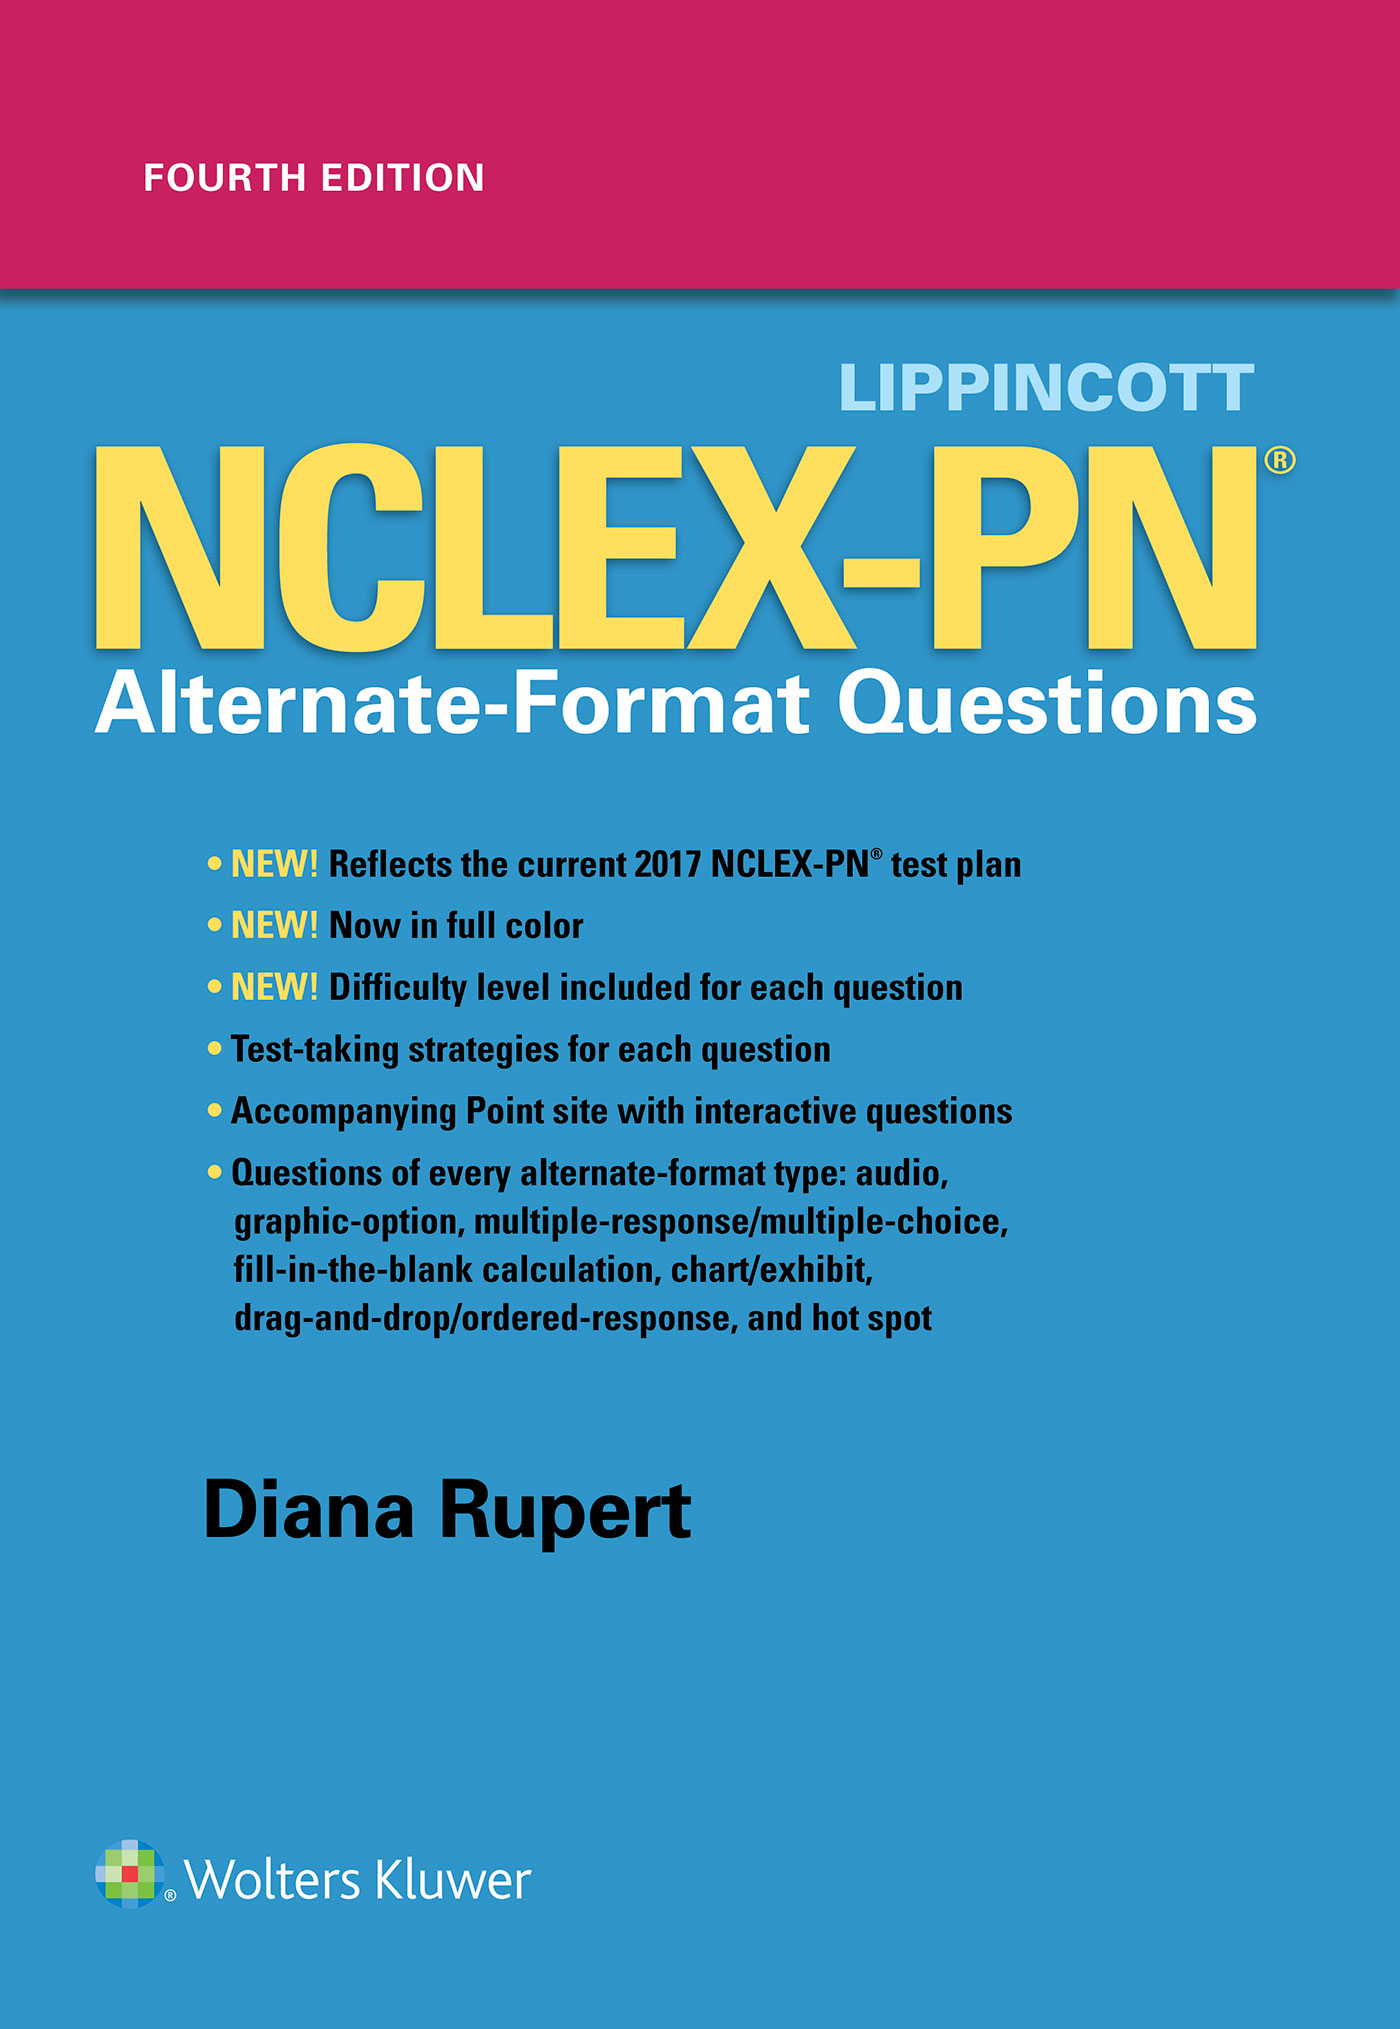 Nursing lww official store wolters kluwer wolters kluwer book lippincott nclex pn alternate format questions xflitez Choice Image